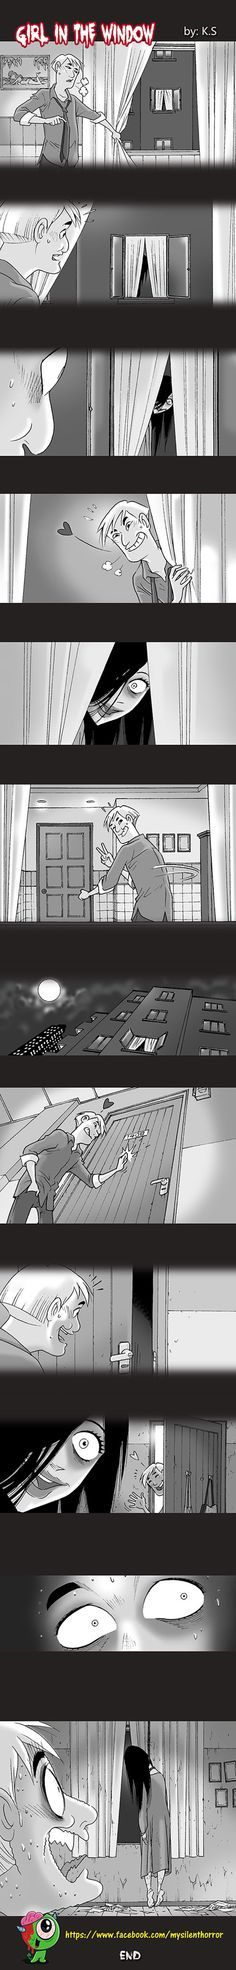 Silent Horror :: Girl in the Window | Tapastic Comics - image 1 Girl in the window